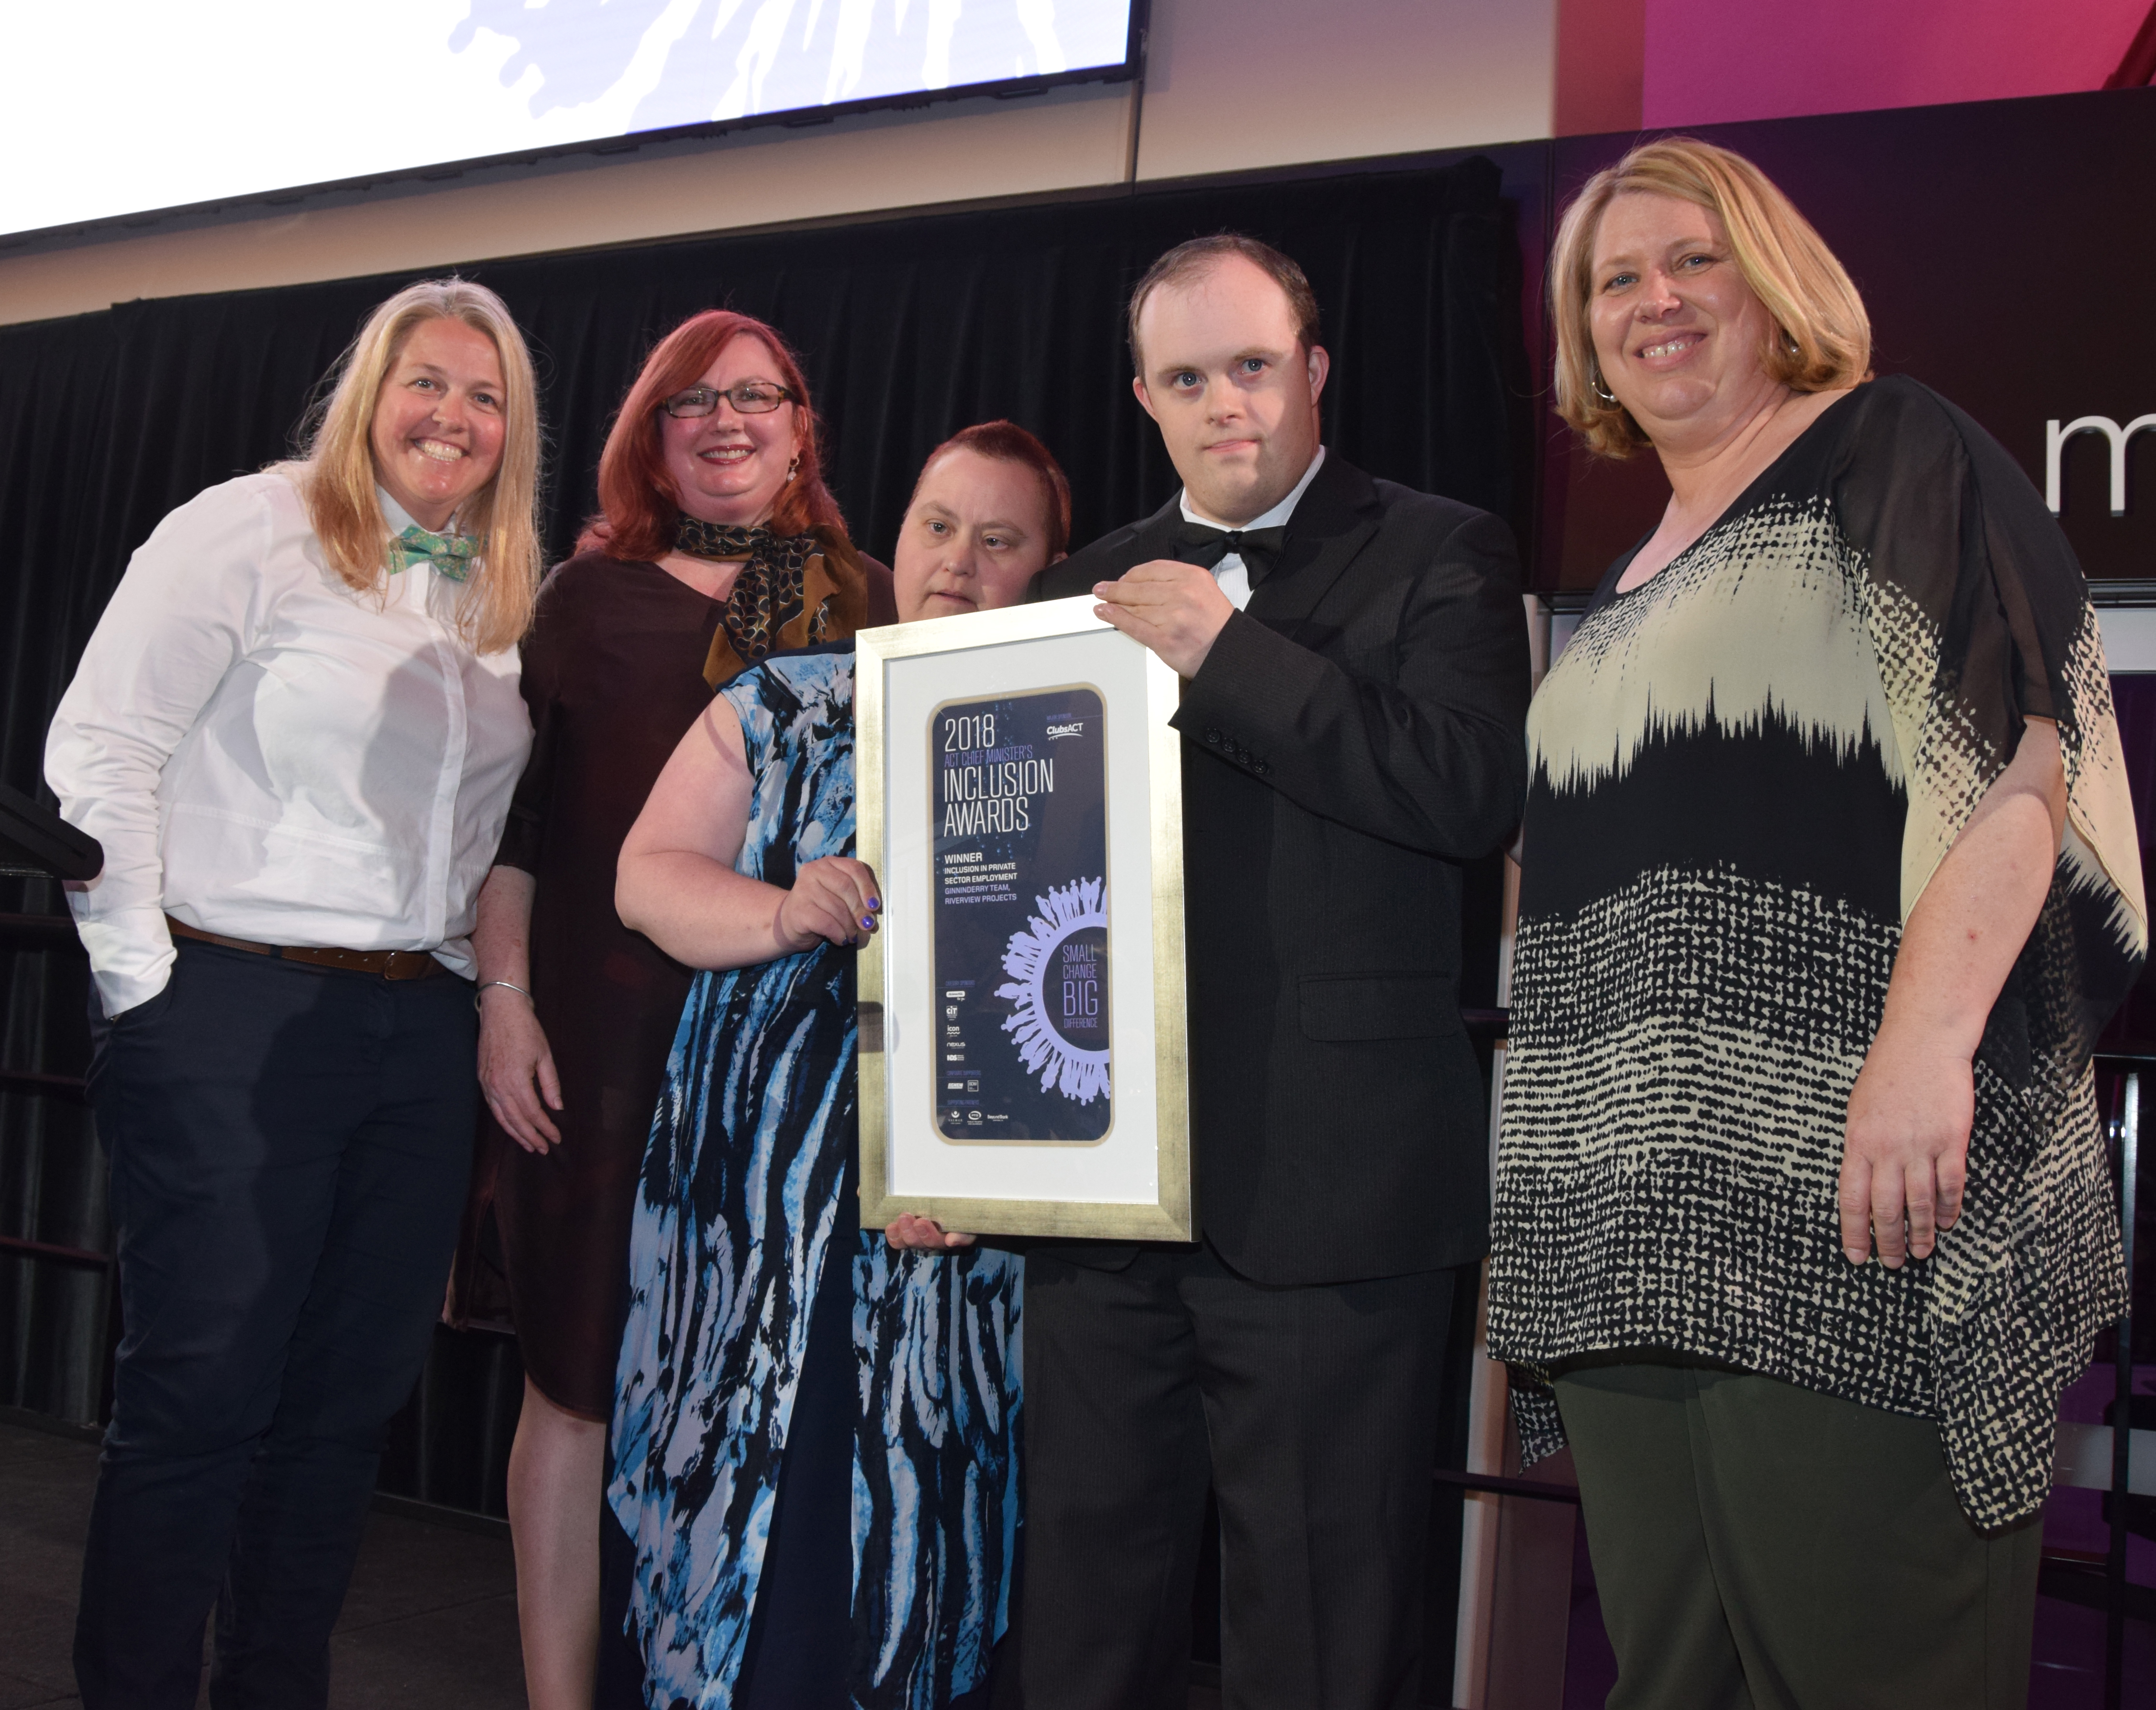 The Ginninderry Team, including Peter and Kathryn, hold their Award